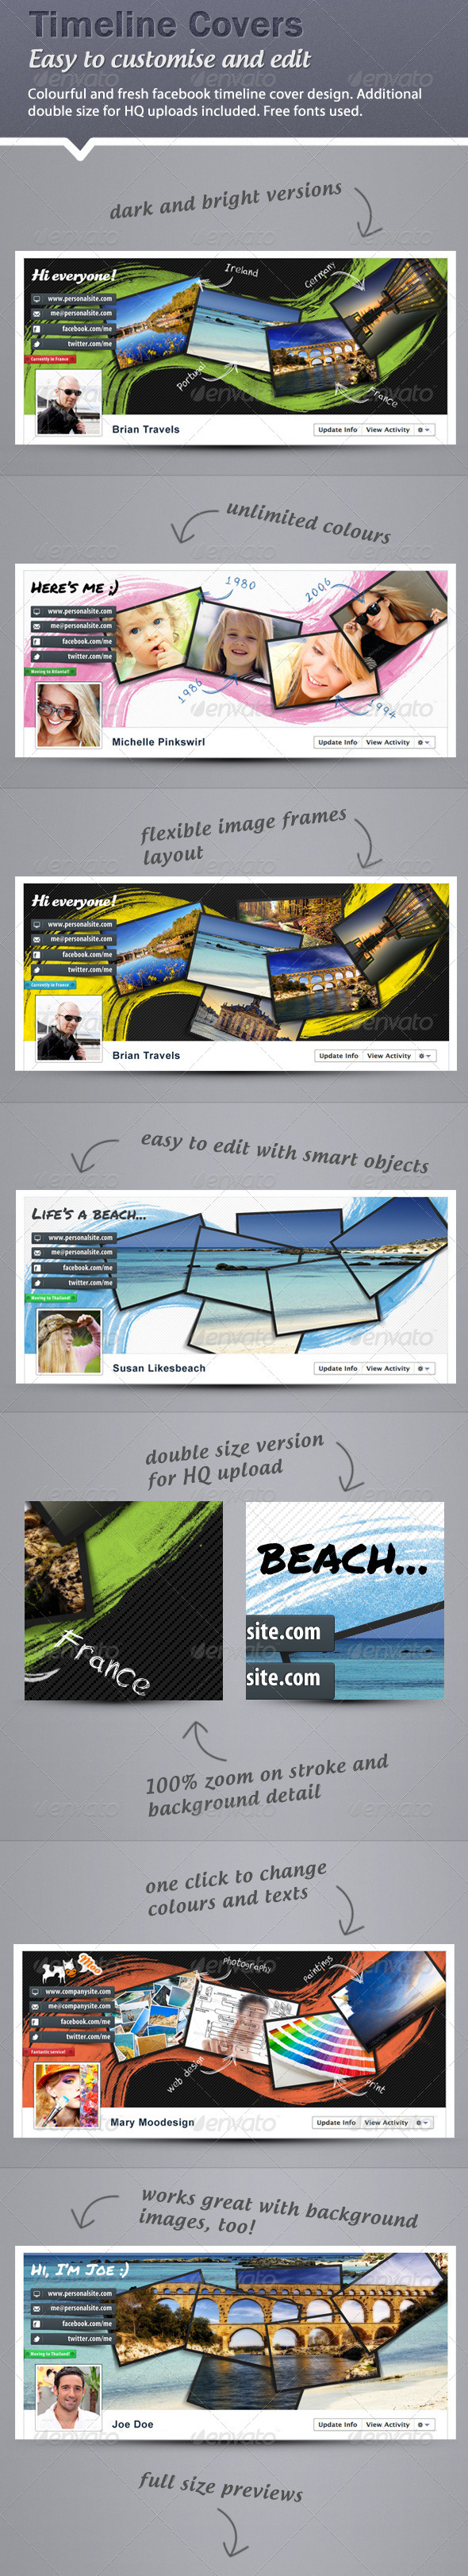 Colorful, Fresh Facebook Timeline Covers - Facebook Timeline Covers Social Media